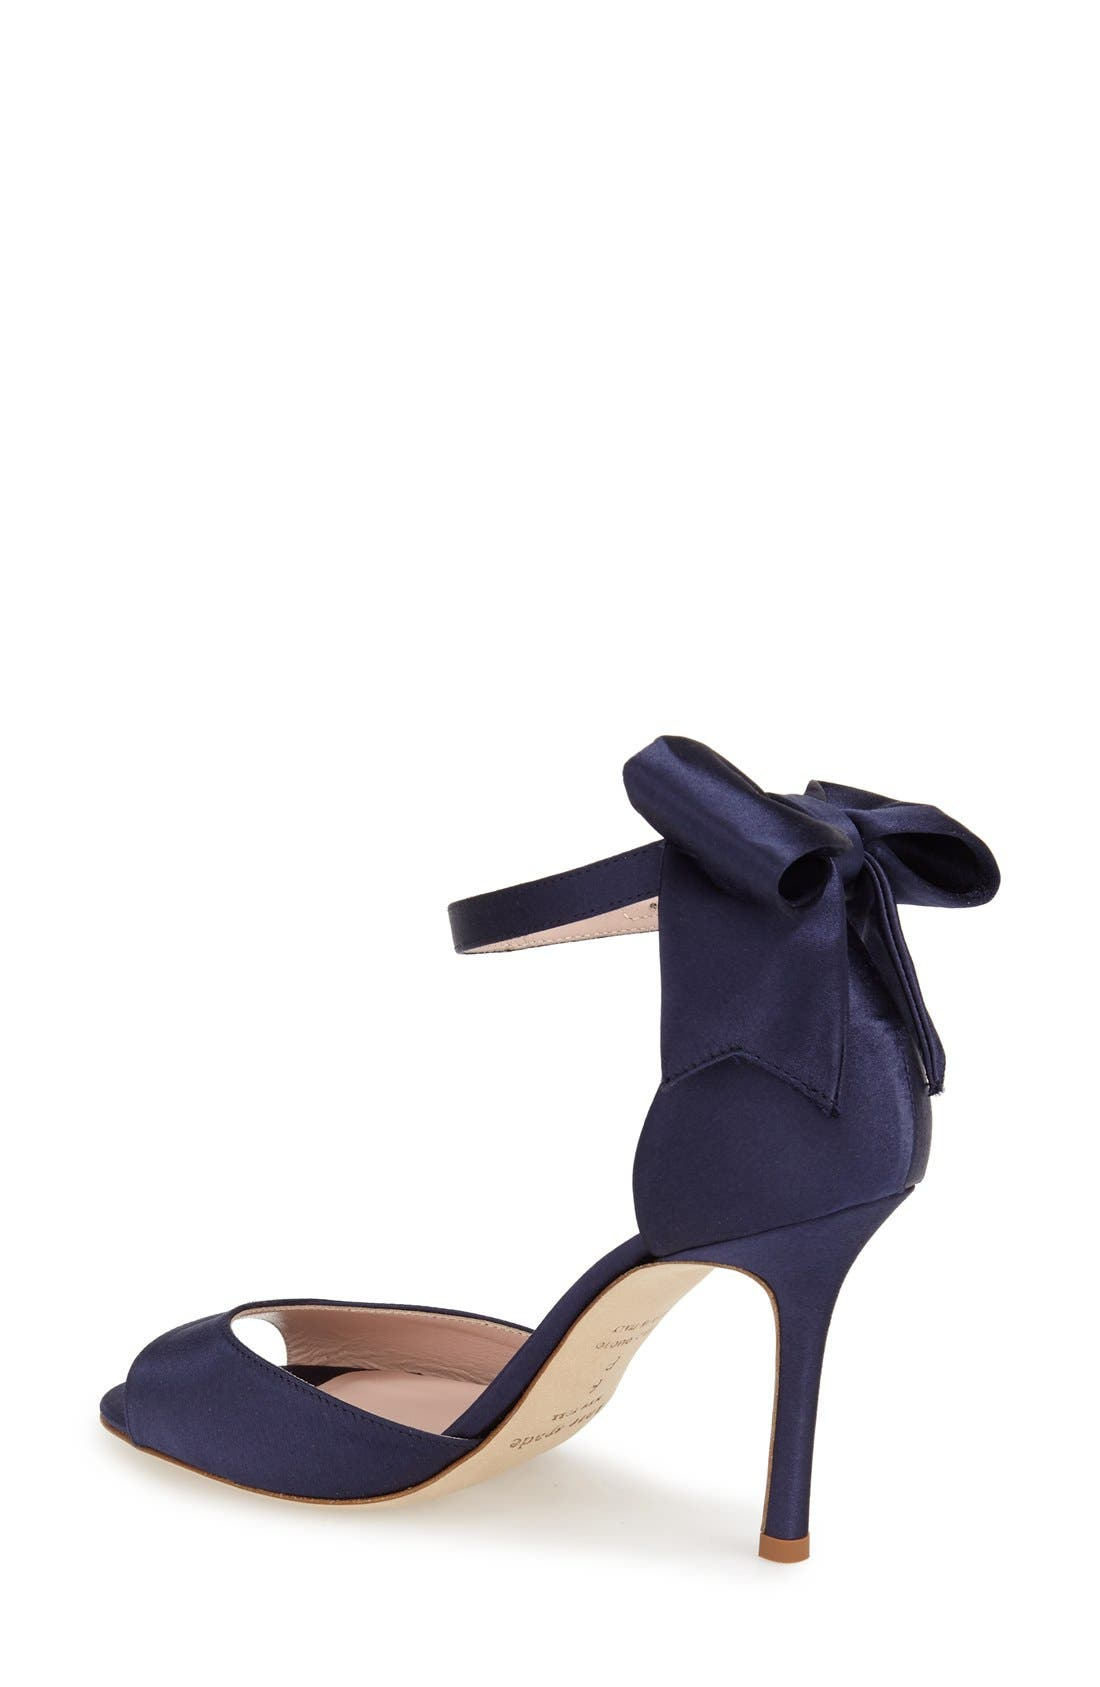 Alternate Image 2  - kate spade new york 'izzie' sandal (Women)